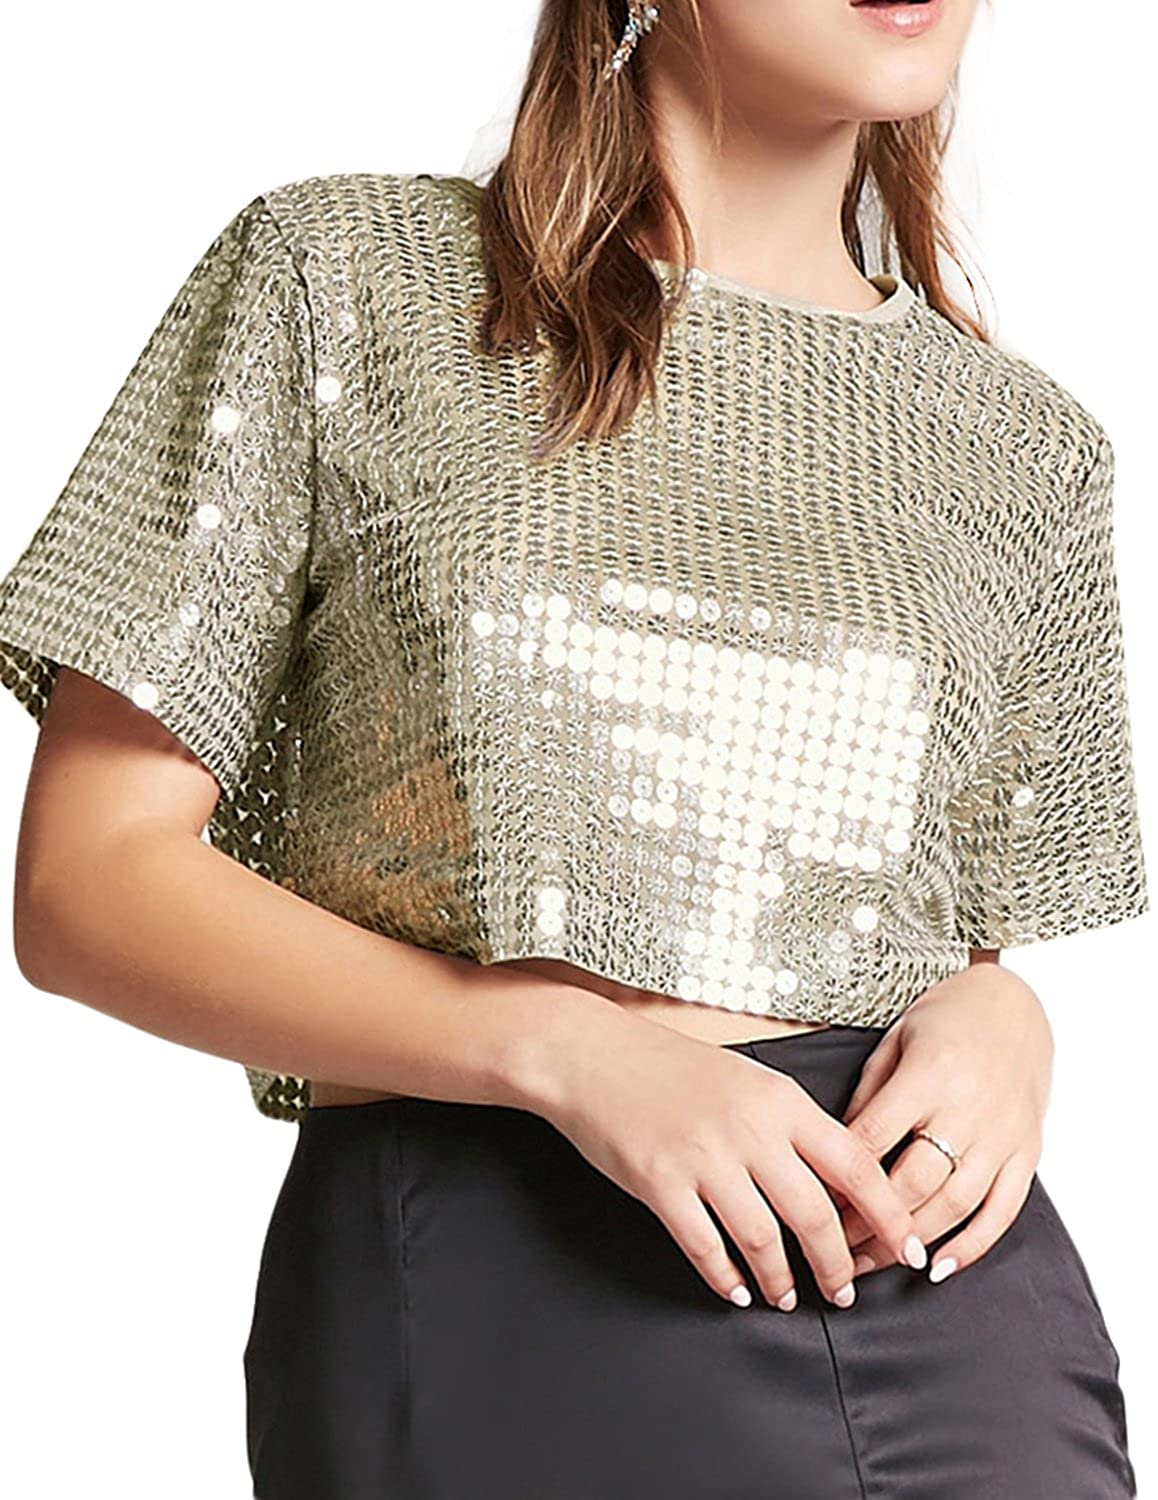 4847b40a5a05d hodoyi Women Sparkly Sequins Crew Neck Crop Top Club Blouse Tee Shirt at  Amazon Women s Clothing store